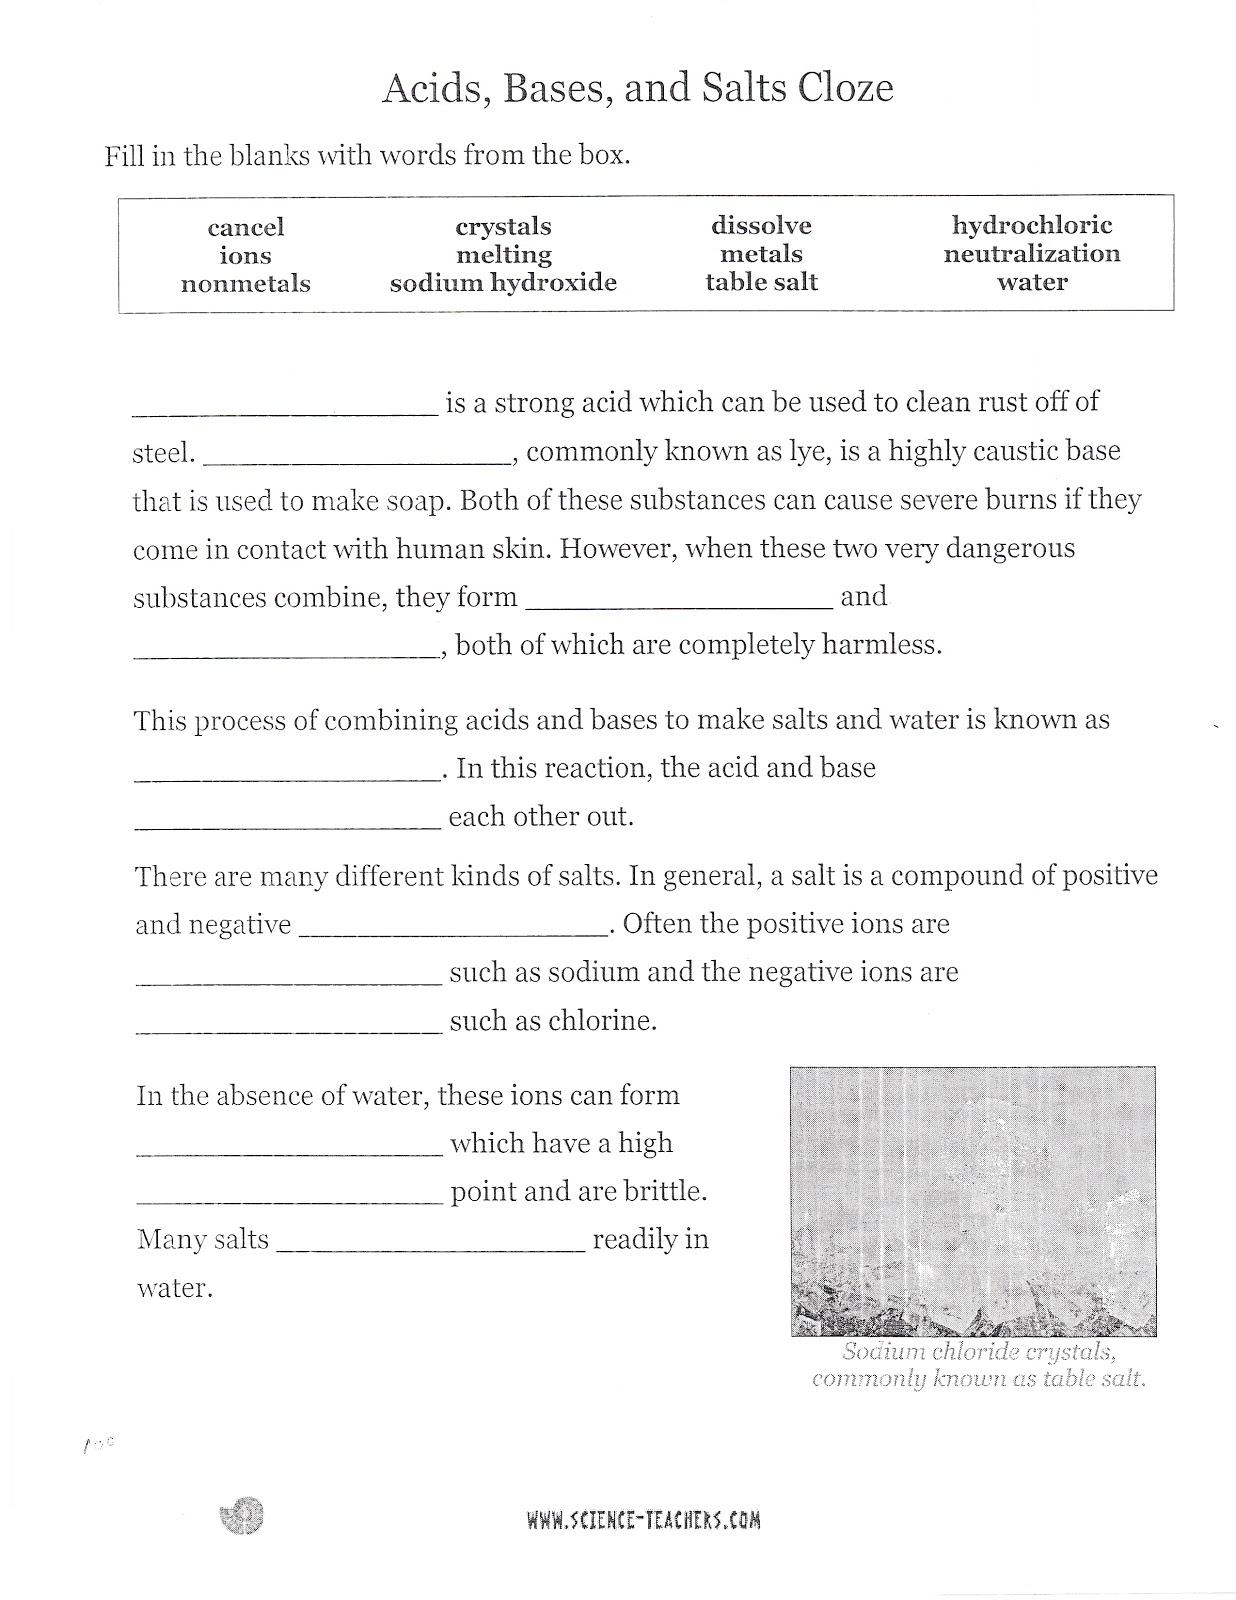 Dr Gaydens Science Class November 2012 – Acid and Bases Worksheet Answer Key